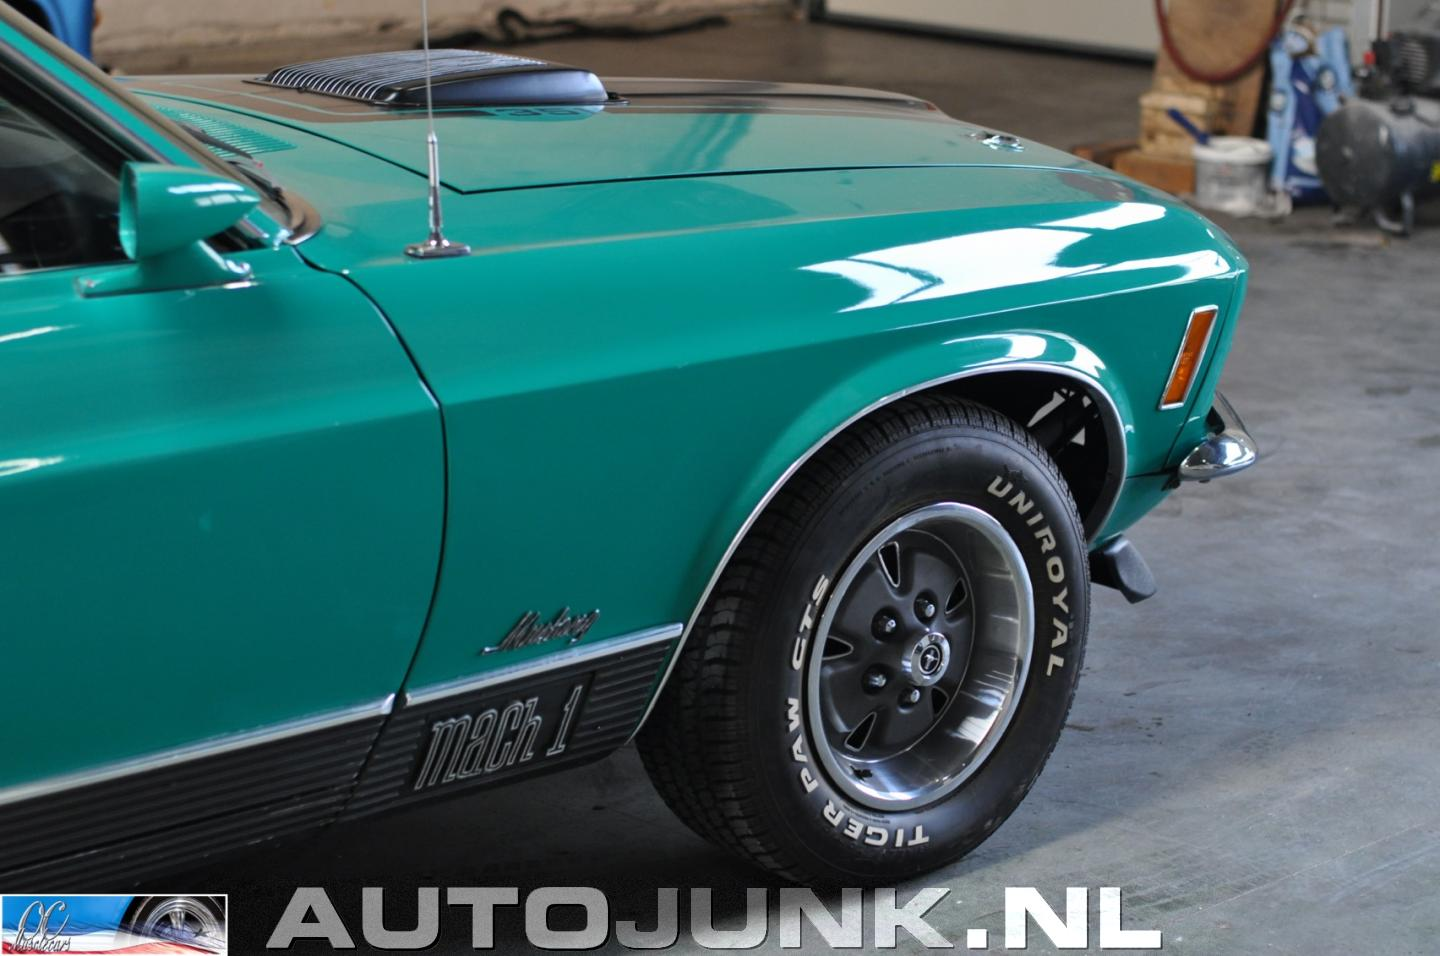 2016 Mustang Mach 1 >> 1970 Ford Mustang Mach 1 foto's » Autojunk.nl (166393)